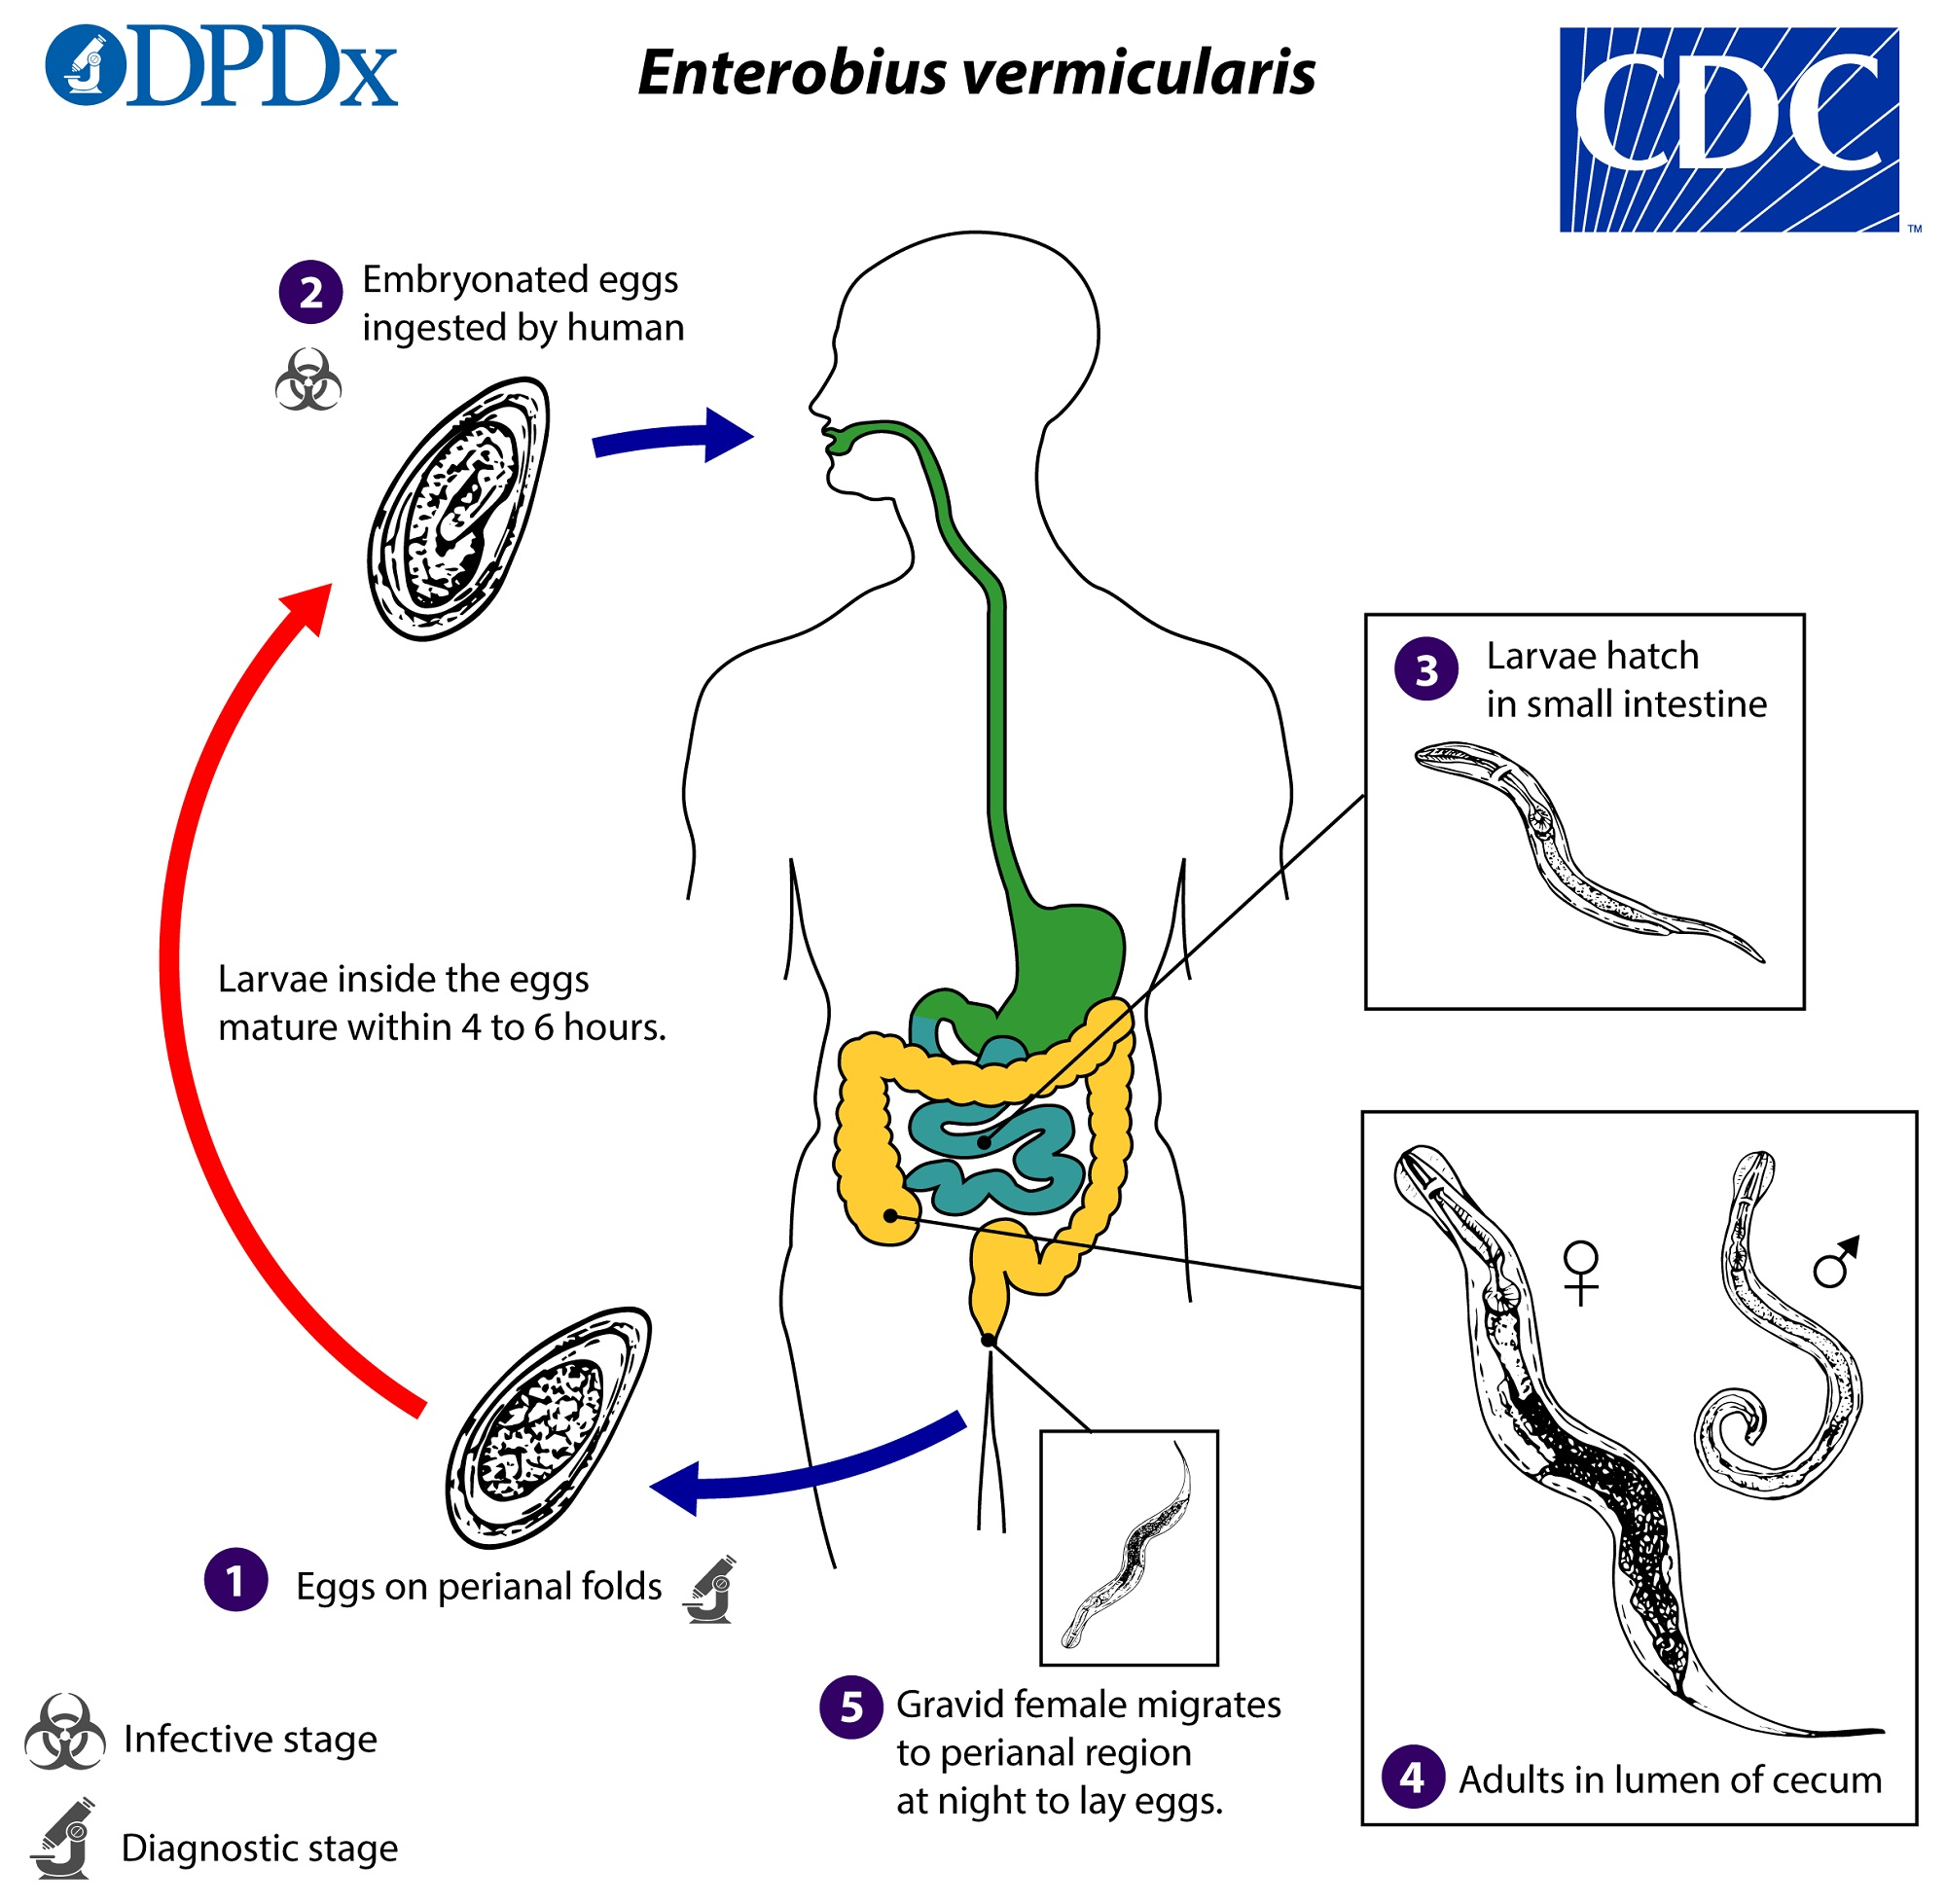 enterobius vermicularis signs and symptoms